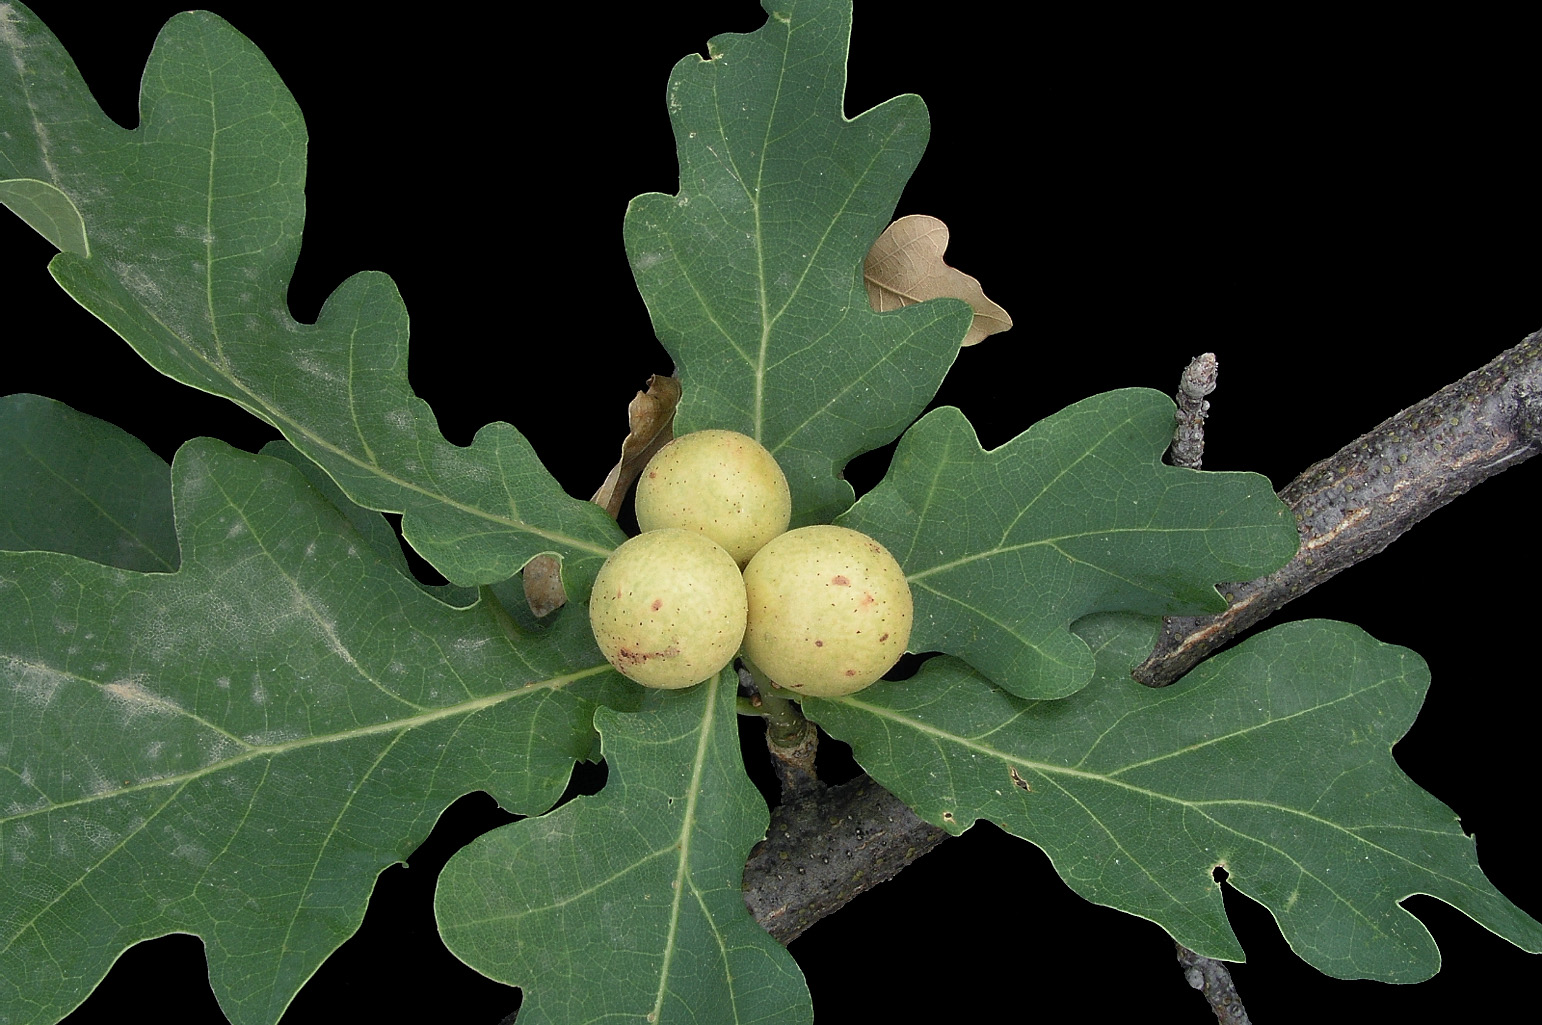 Branch with 3 galls caused by the wasp <span class=cursiva>Andricus kollari</span>